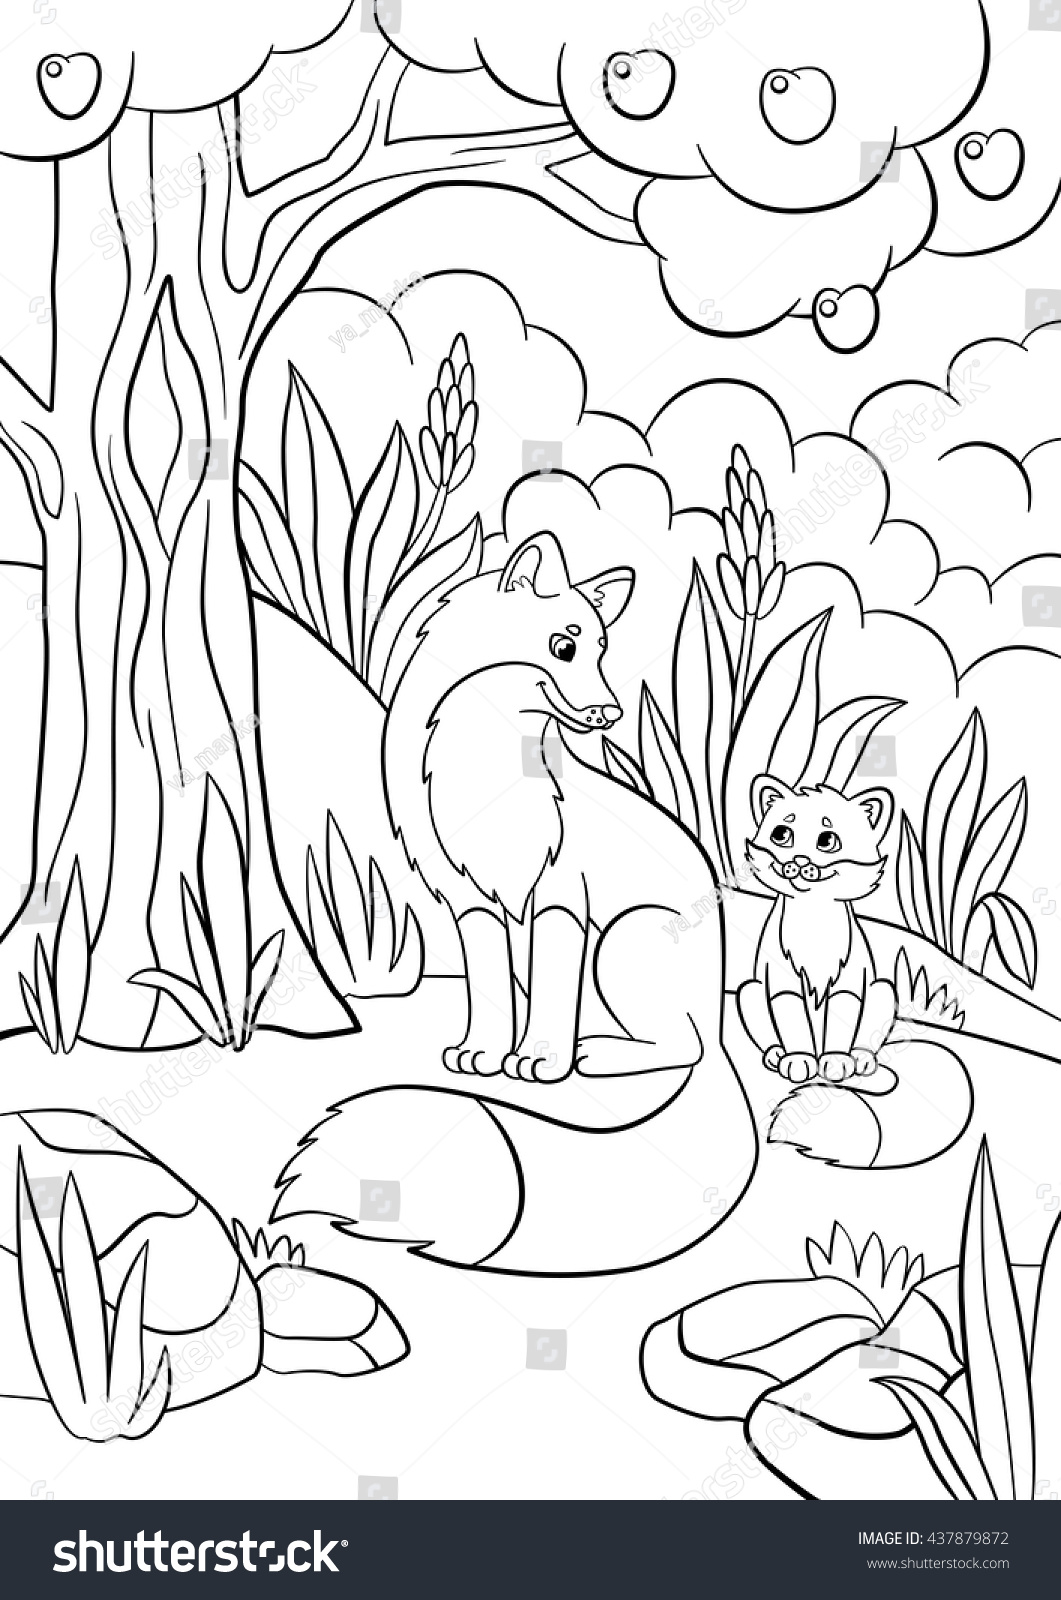 coloring pages wild animals mother fox stock vector 437879872